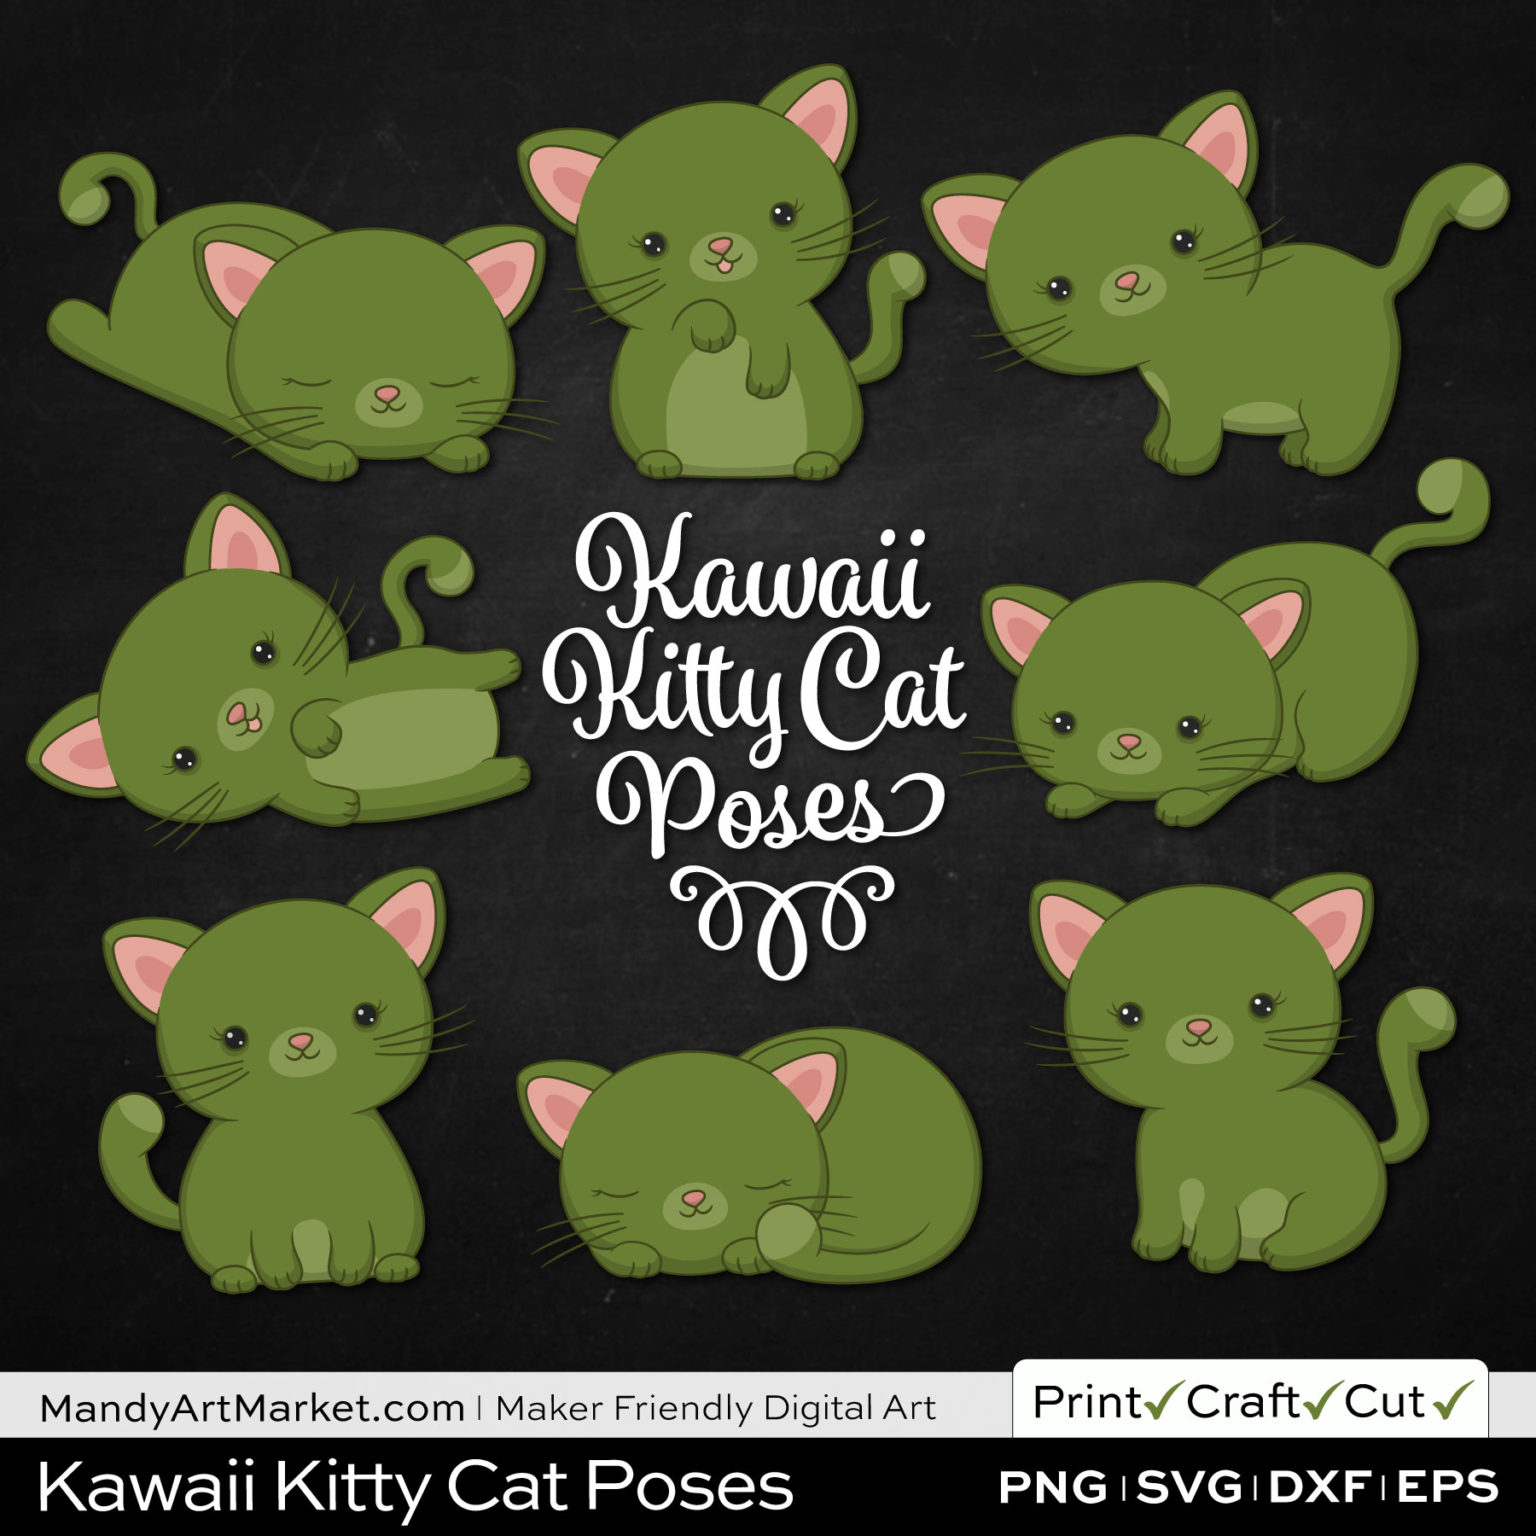 Turtle Green Kawaii Kitty Cat Poses Clipart on Black Background